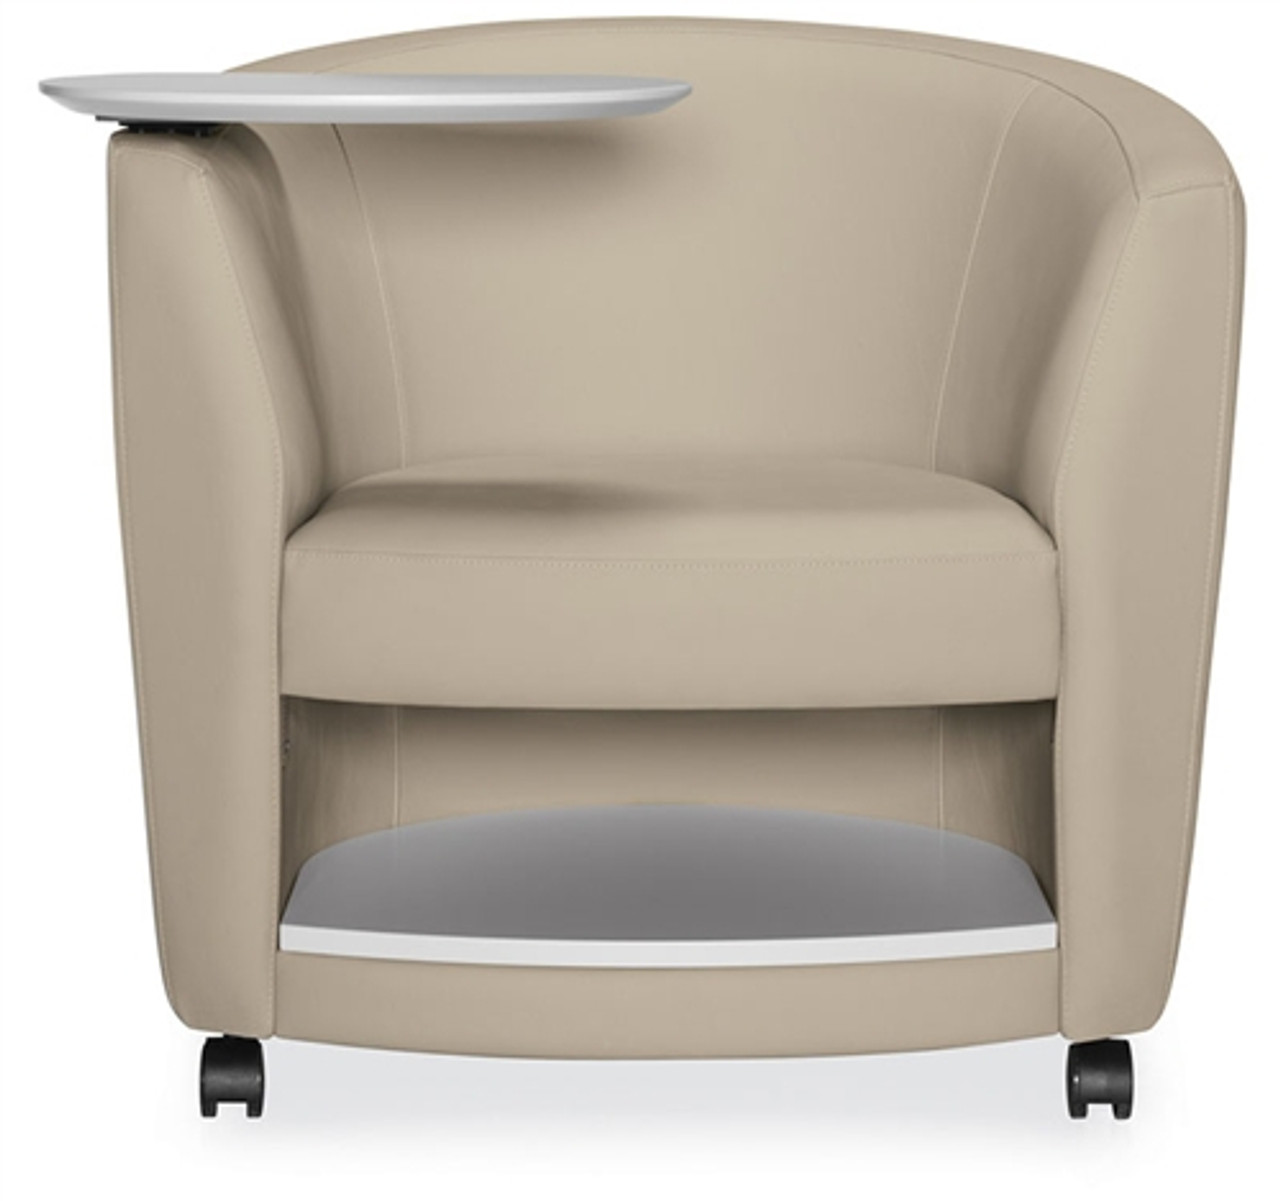 Stupendous Global Sirena Mobile Lounge Chair With Tablet Arm And Bottom Shelf 3372Lcmltm Pdpeps Interior Chair Design Pdpepsorg